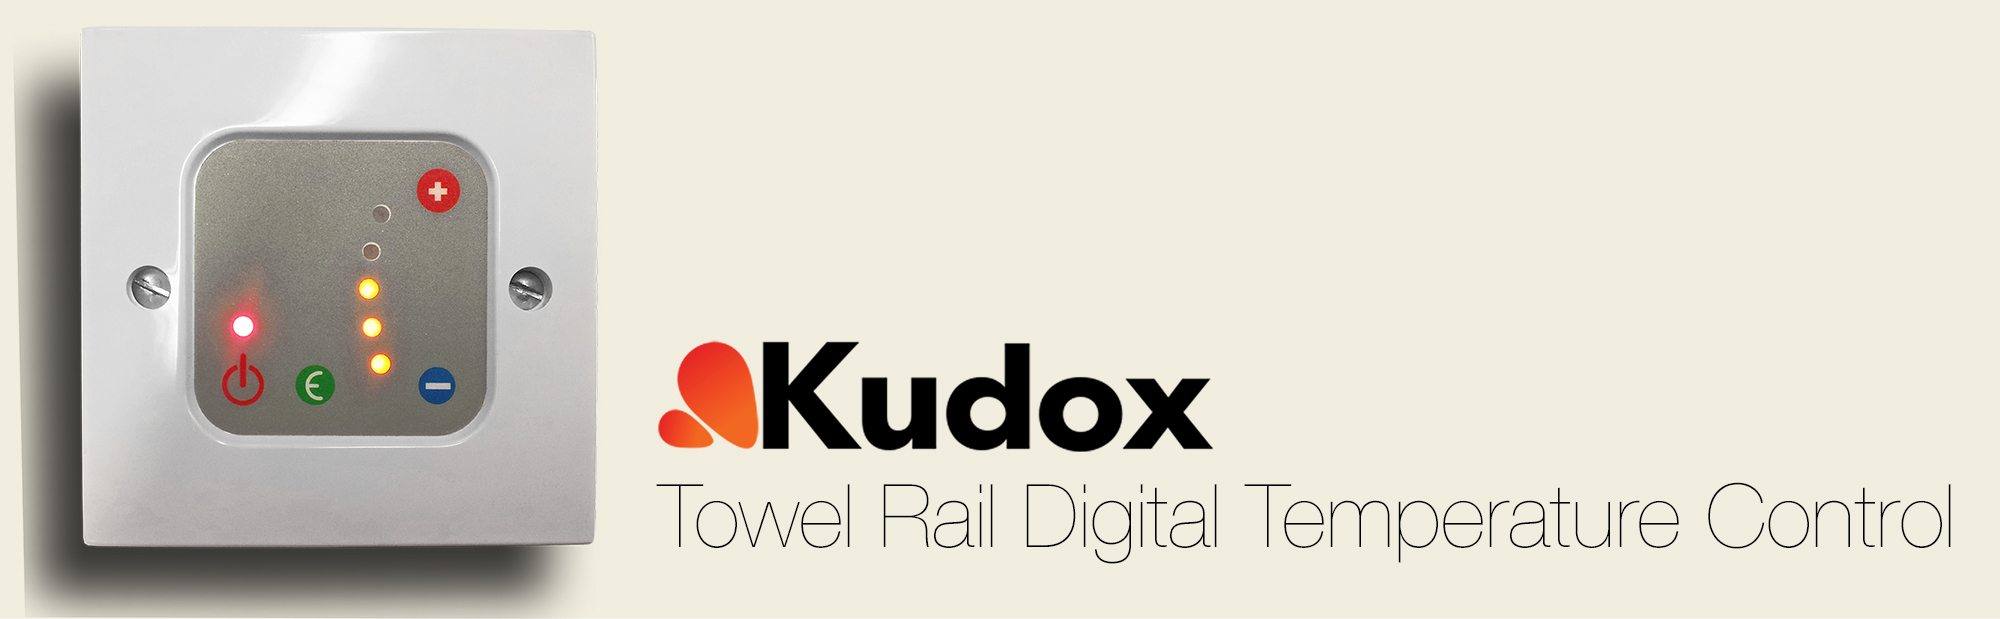 Kudox Towel Rail Digital Temperature Control